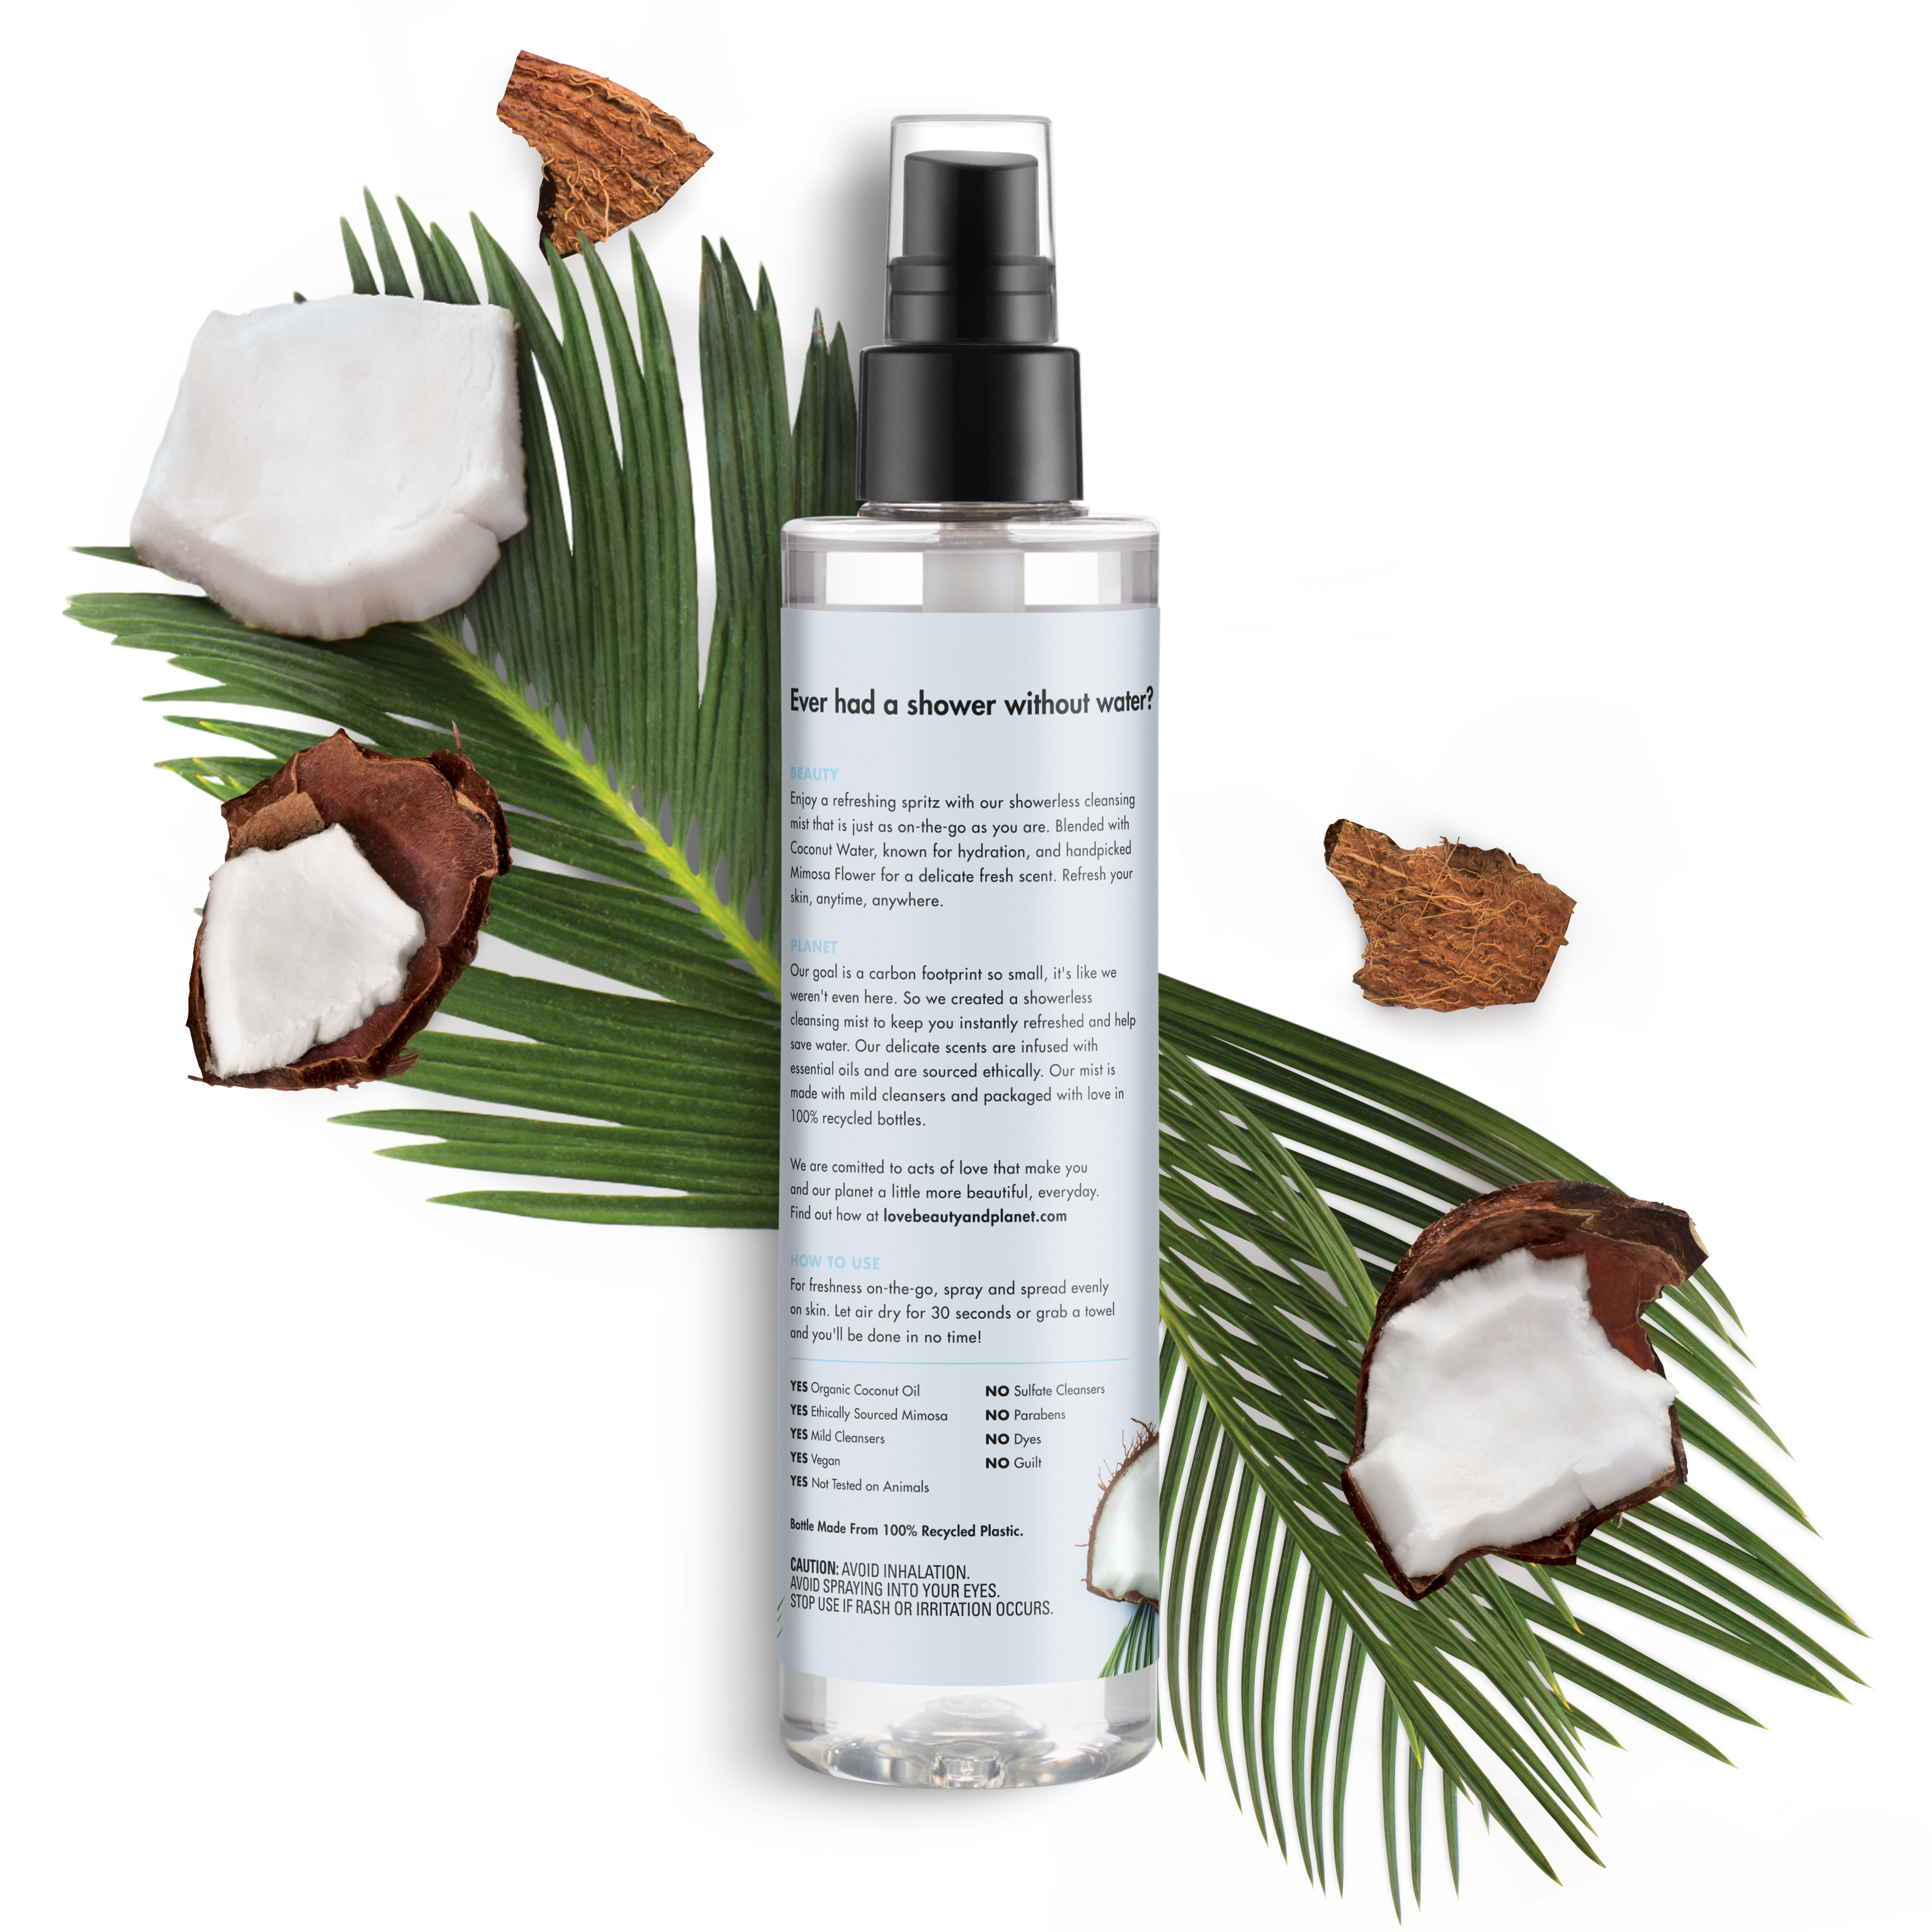 Beauty Water 100 Love And Planet Coconut Mimosa Flower Showerless Cleansing Body Mist Radical Refresher 67oz